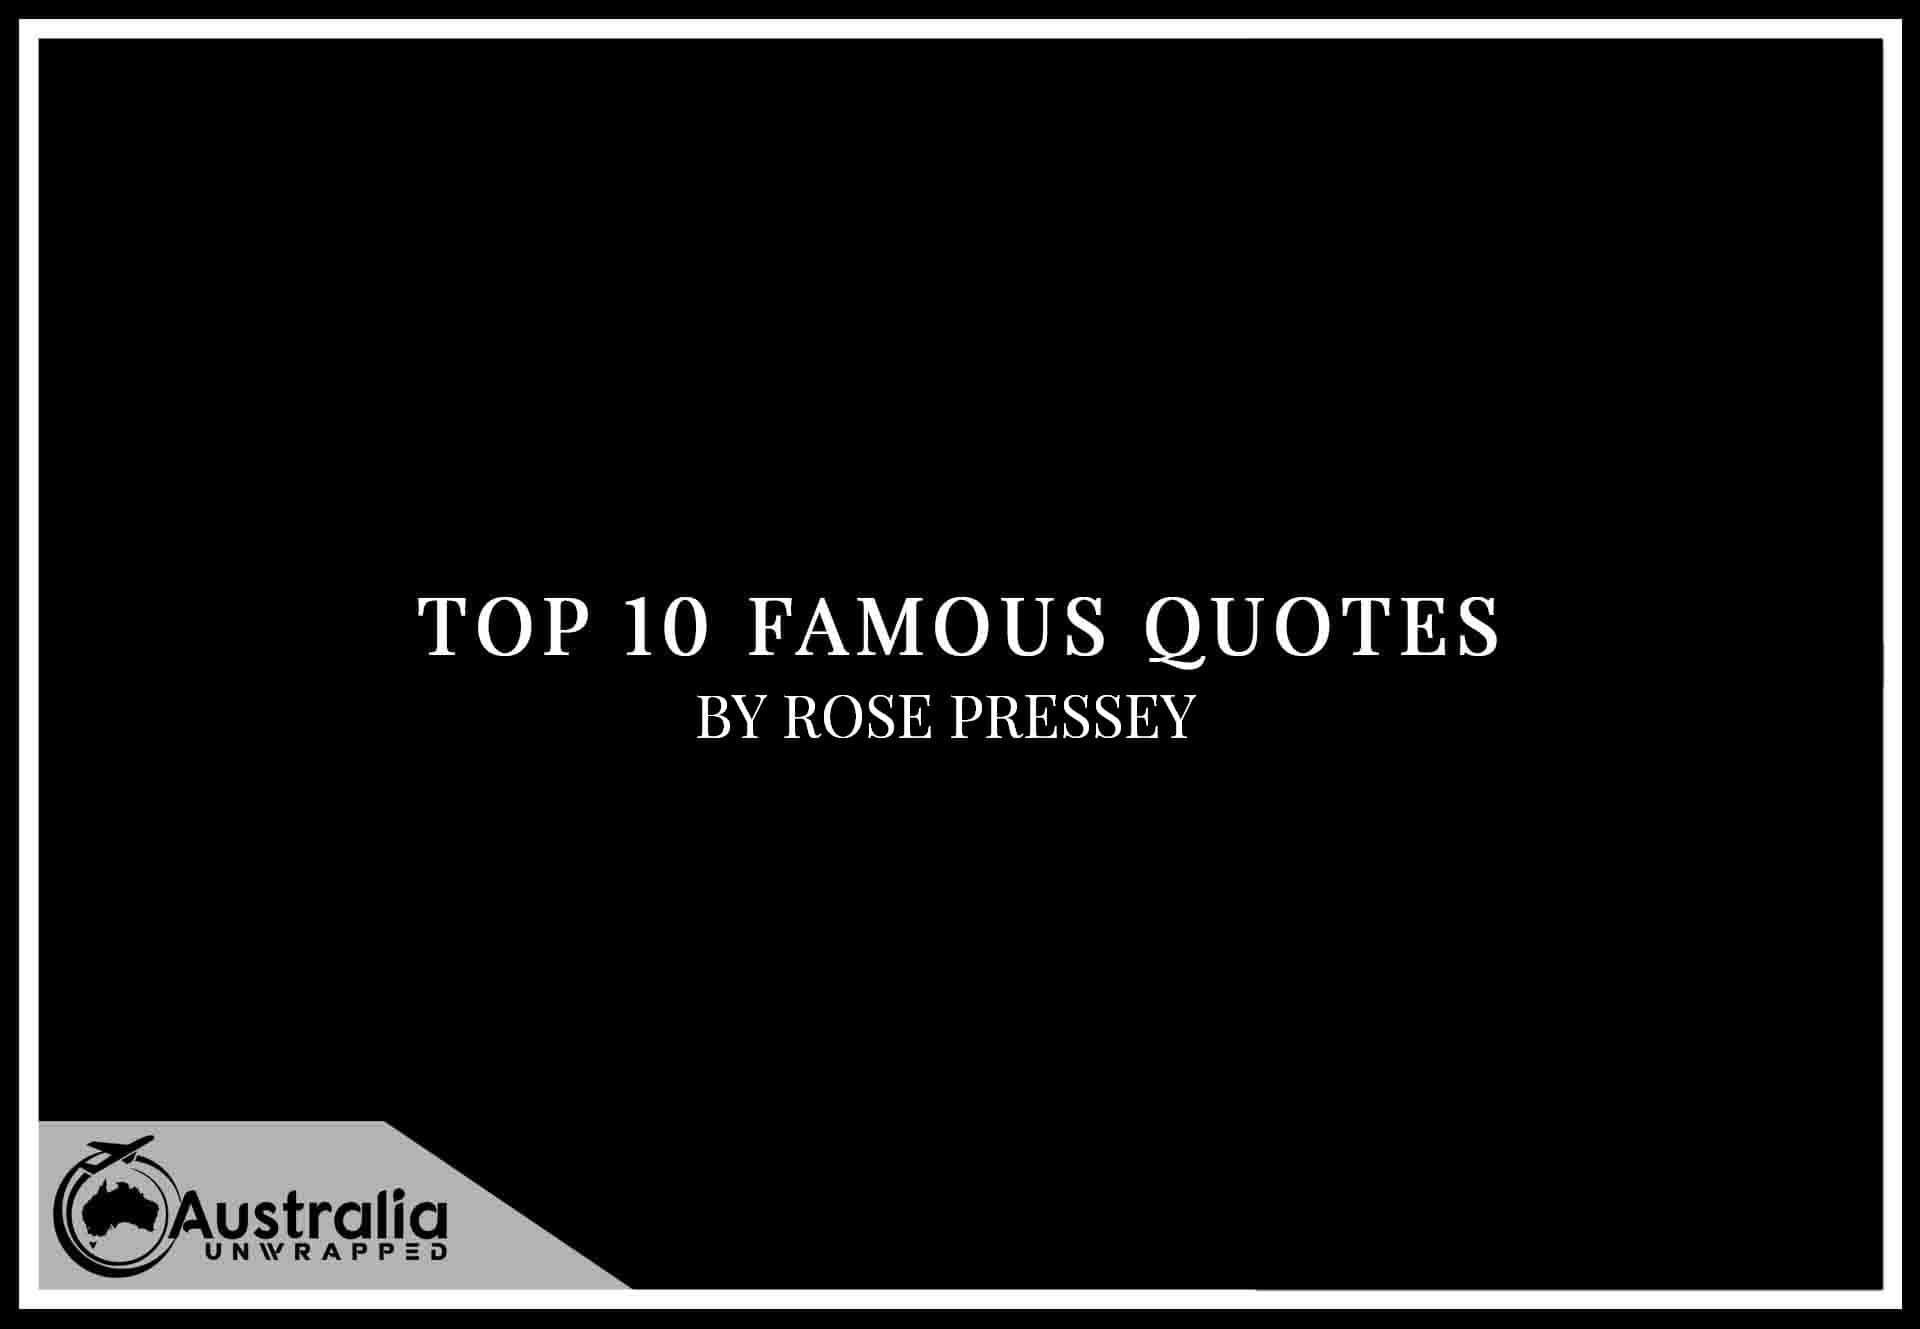 Top 10 Famous Quotes by Author Rose Pressey